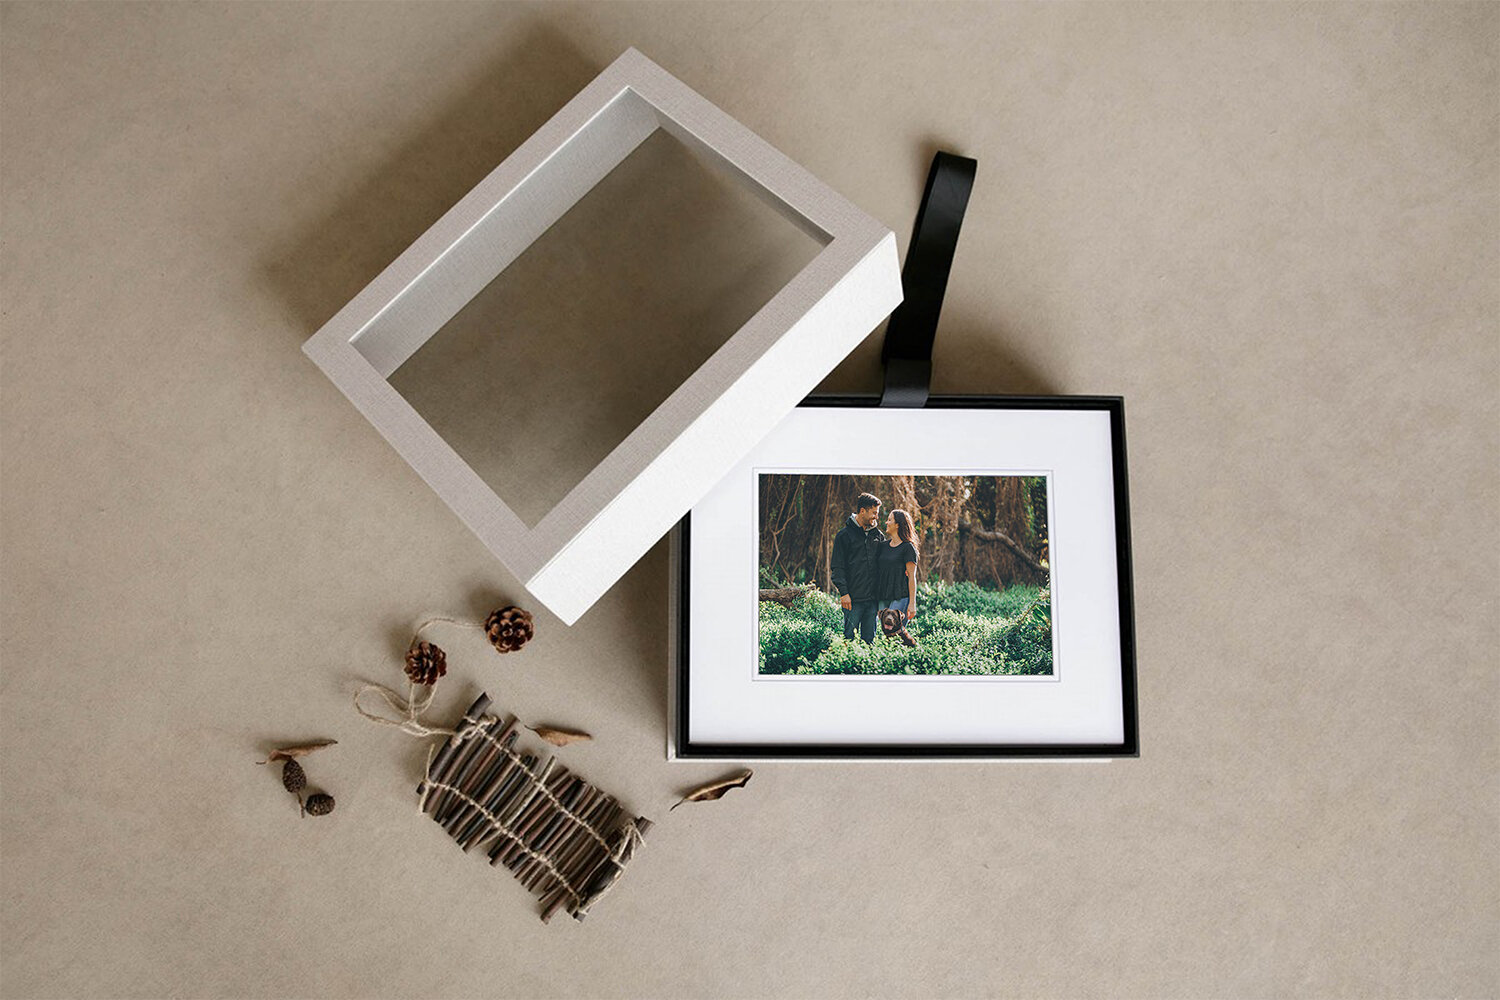 Signature box - Individual fine art prints size 5x7.5 mounted and matted to 8x10. Overall size is ready for an 8x10 frame. Our Signature Box has a large crystal clear window on the lift-off lid of the box that reveals the image below the glass. It is fully lined with black velvet and features a lift-out black ribbon.Available in our Fine Art Print + Digital Collections of 20 or all session images.From $1430